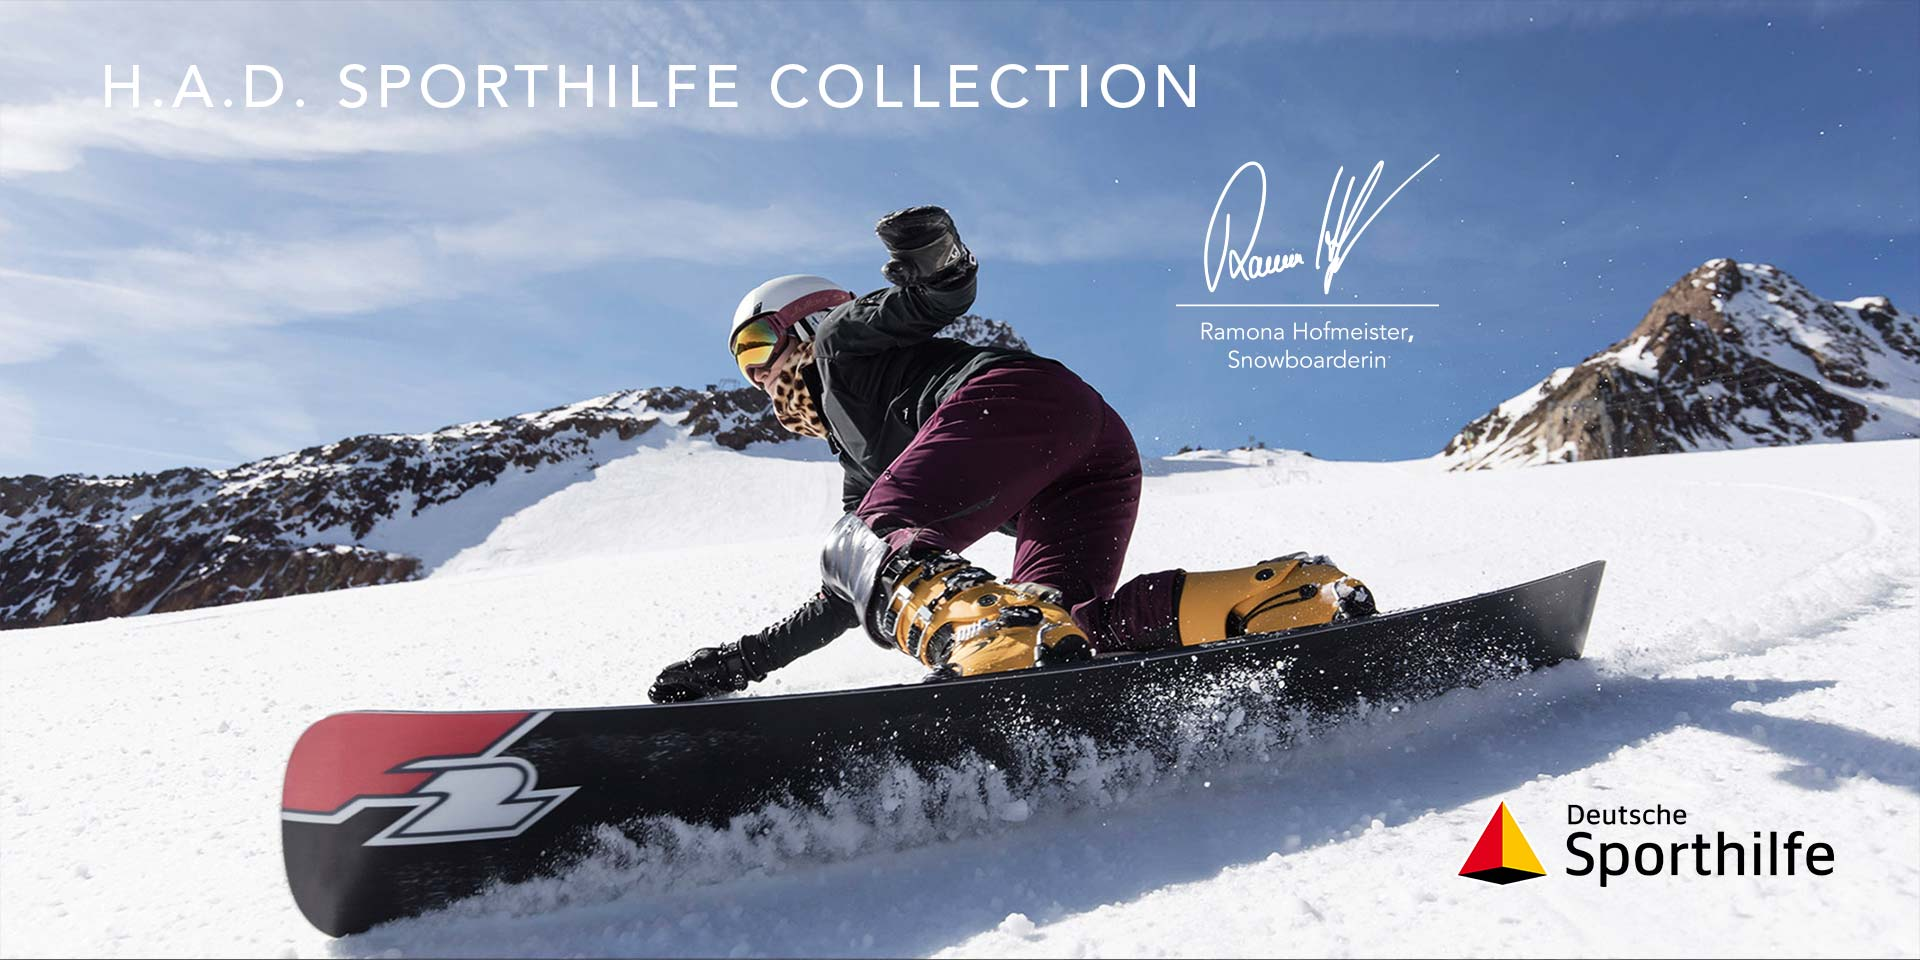 Deutsche Sporthilfe Collection